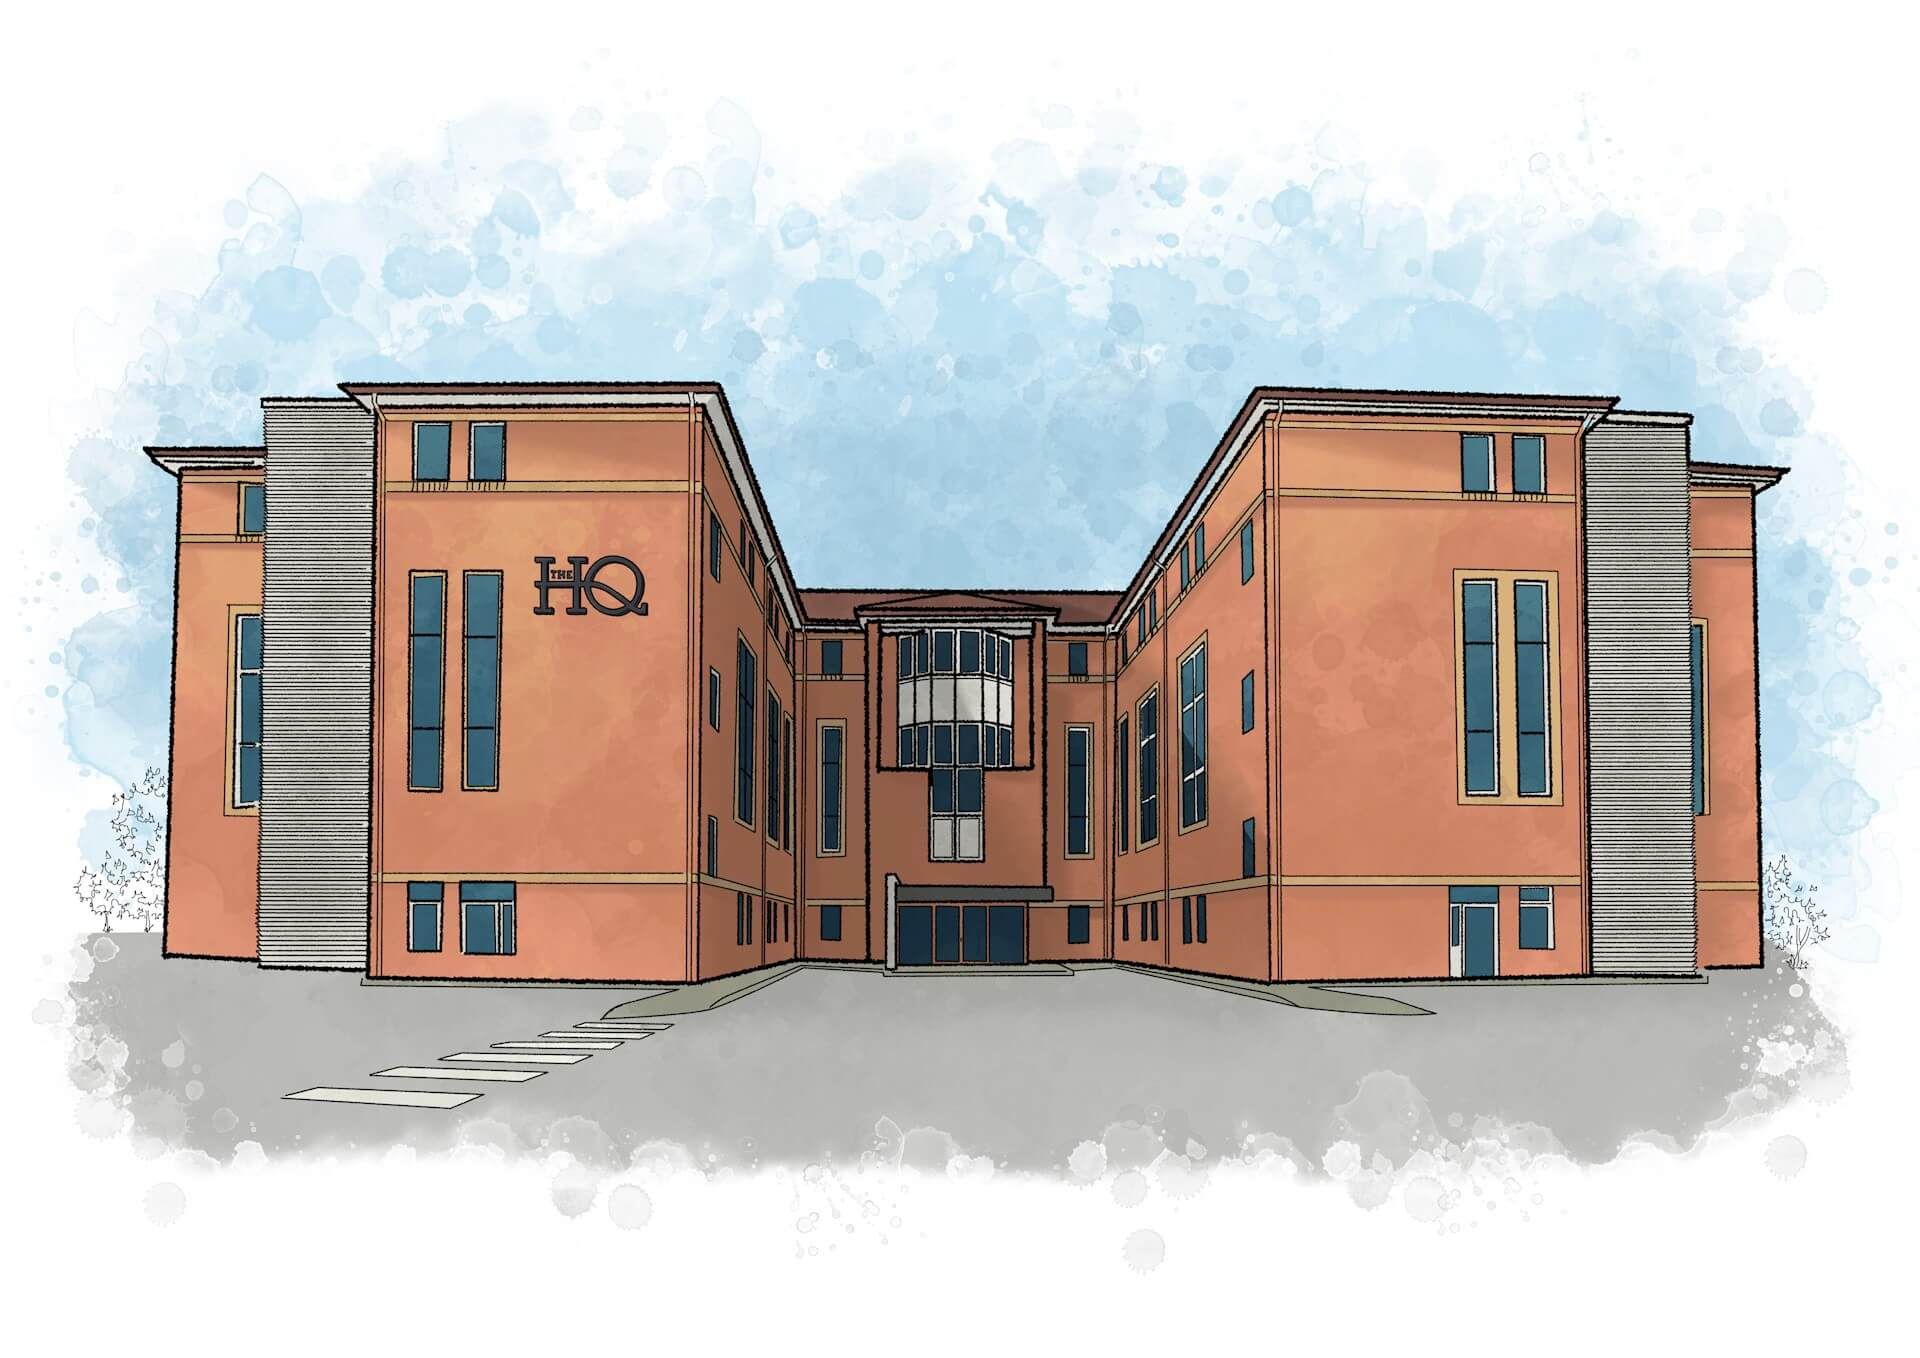 Artist's sketch illustration of The HQ in Chesterfield